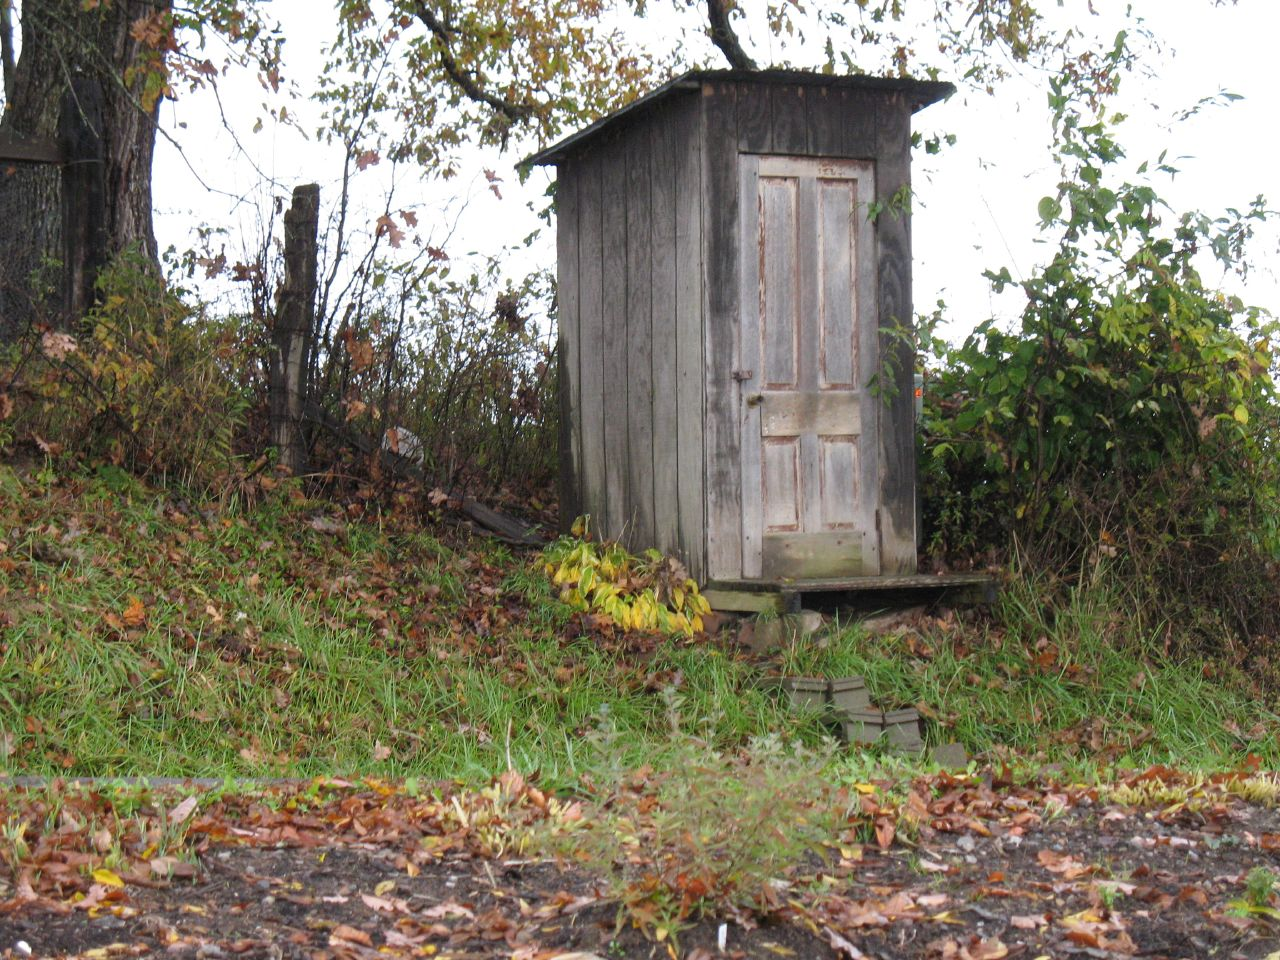 http://upload.wikimedia.org/wikipedia/commons/b/b9/Amish_Outhouse.jpg